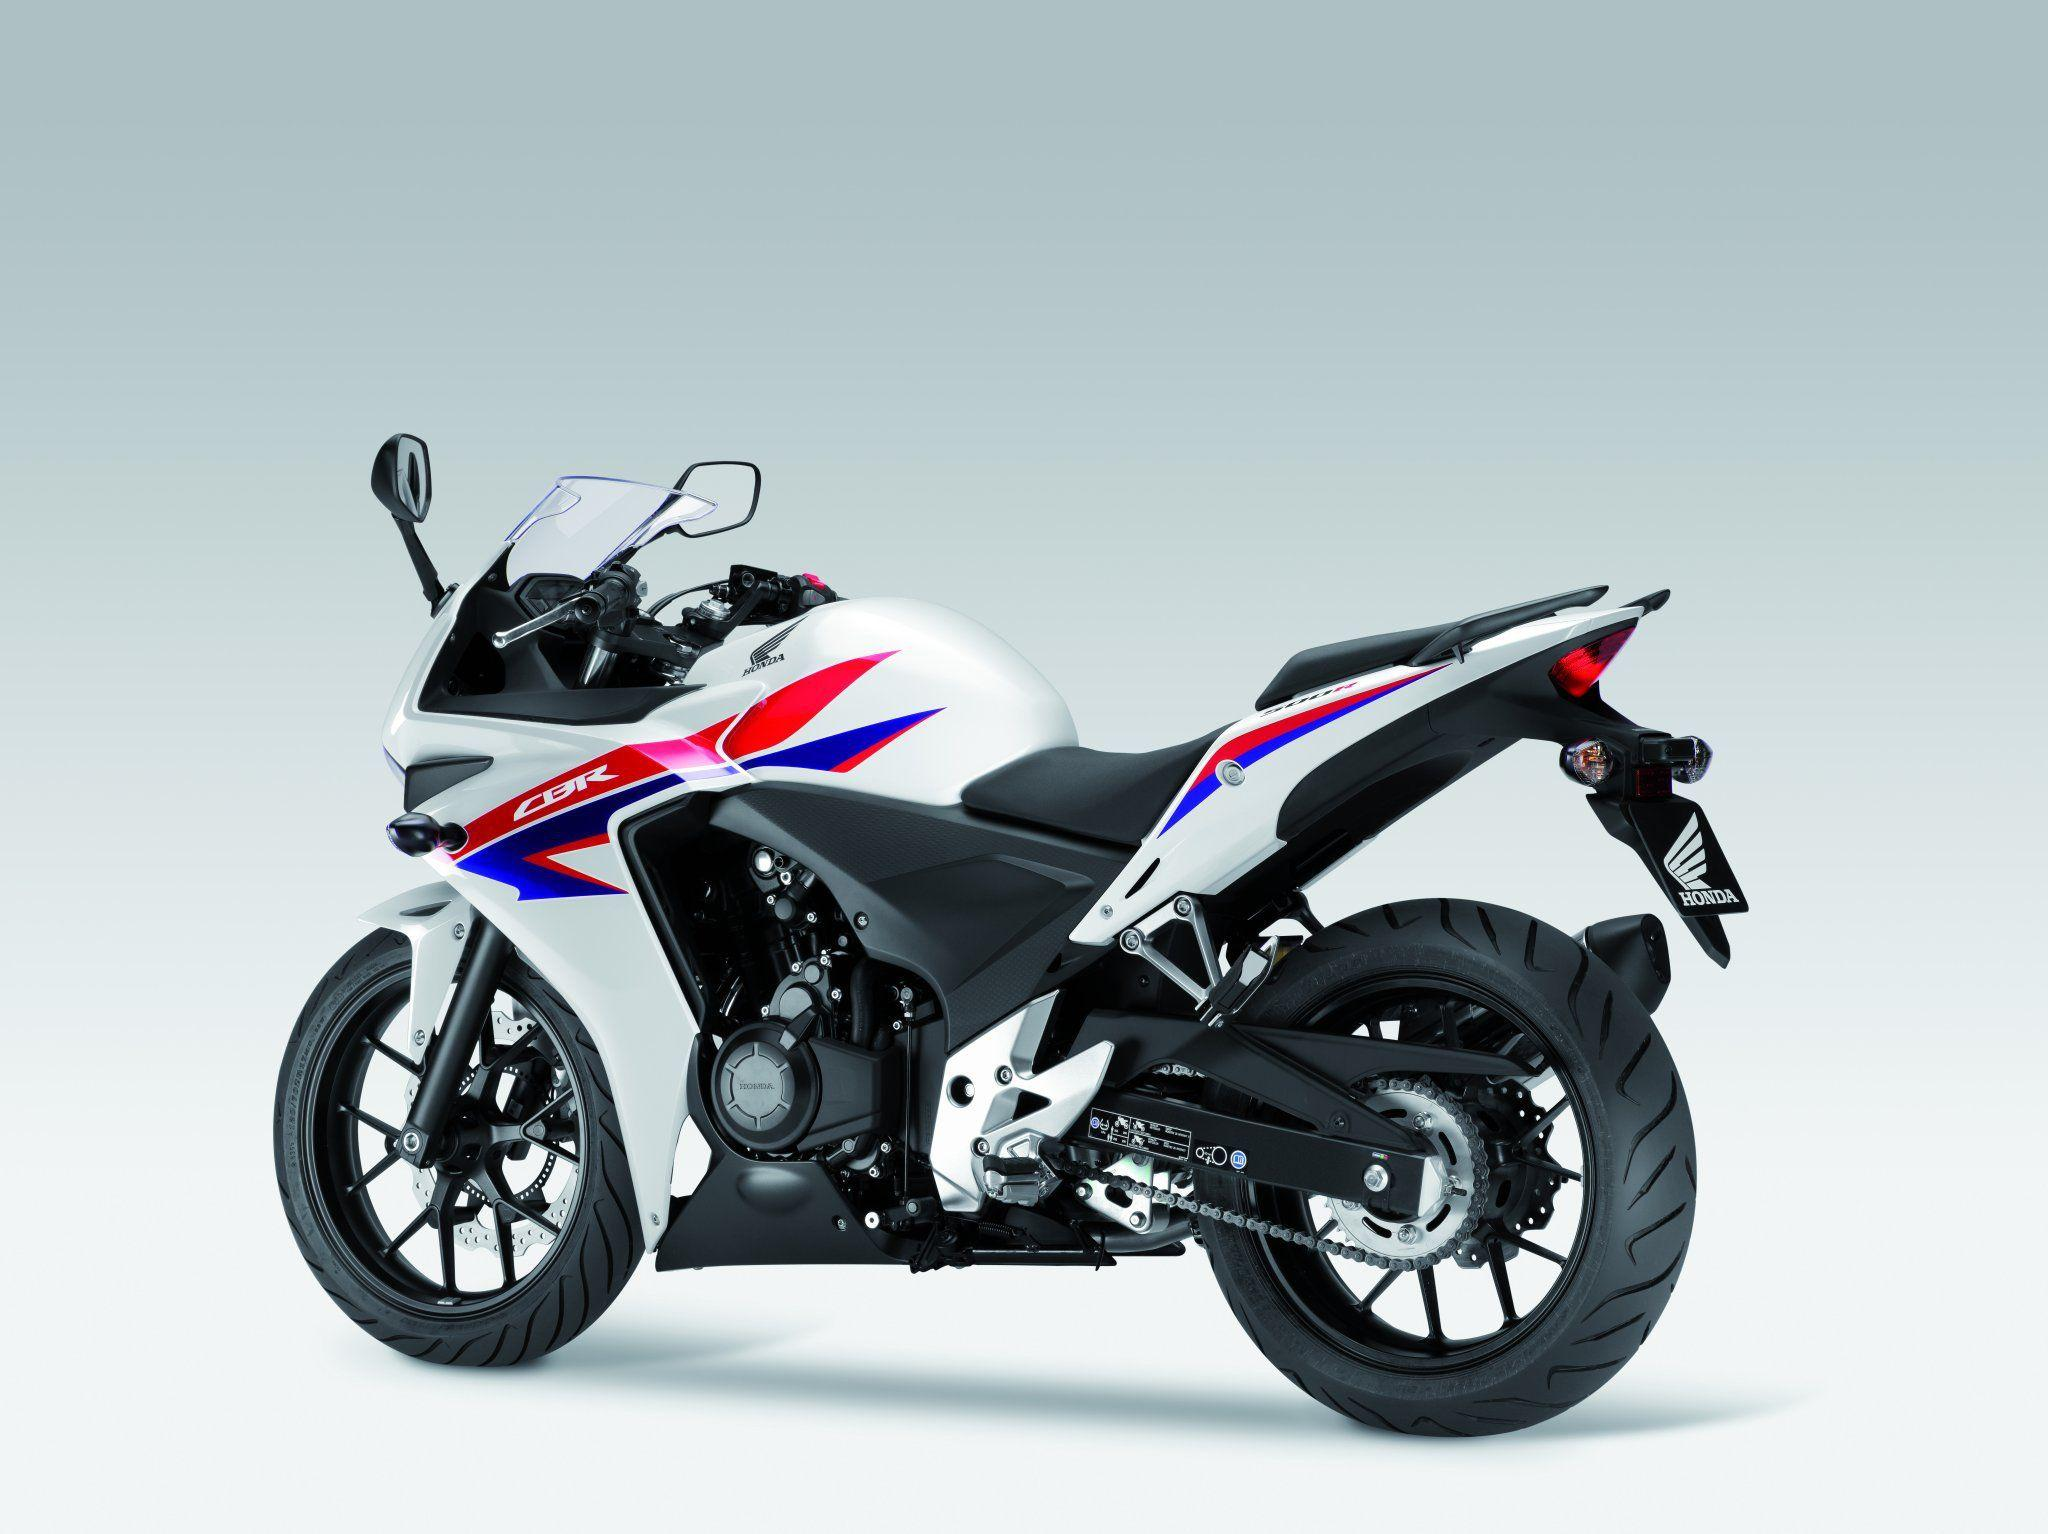 Bike model Honda CBR 500 R wallpapers and images - wallpapers ...